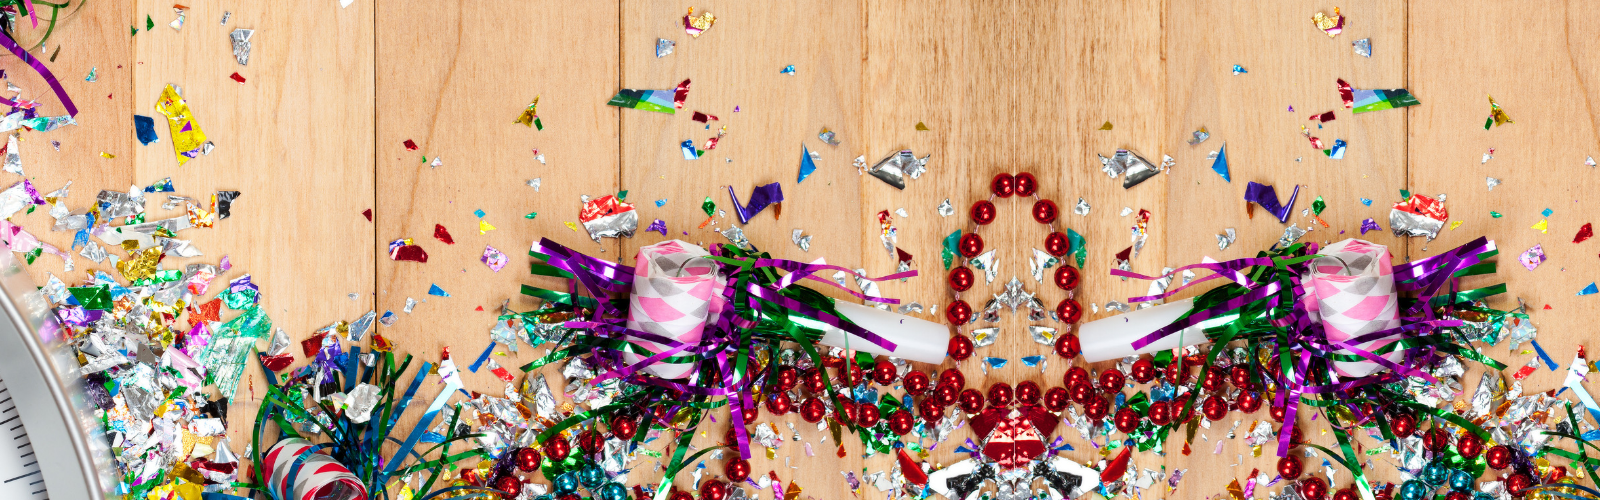 confetti and party decorations strewn on floor